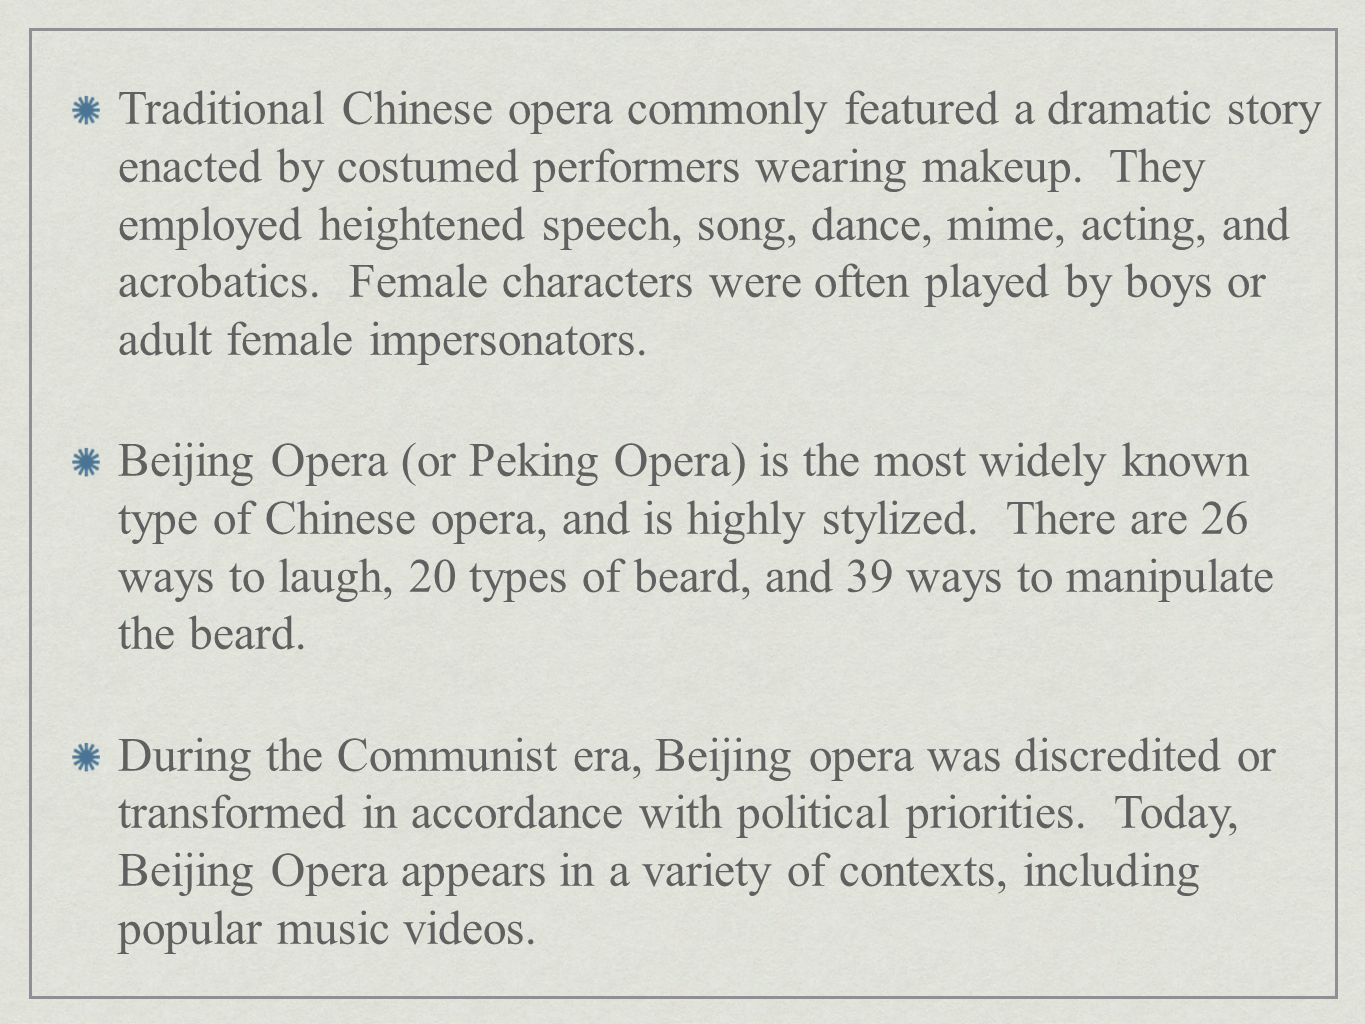 Traditional Chinese opera commonly featured a dramatic story enacted by costumed performers wearing makeup. They employed heightened speech, song, dance, mime, acting, and acrobatics. Female characters were often played by boys or adult female impersonators.